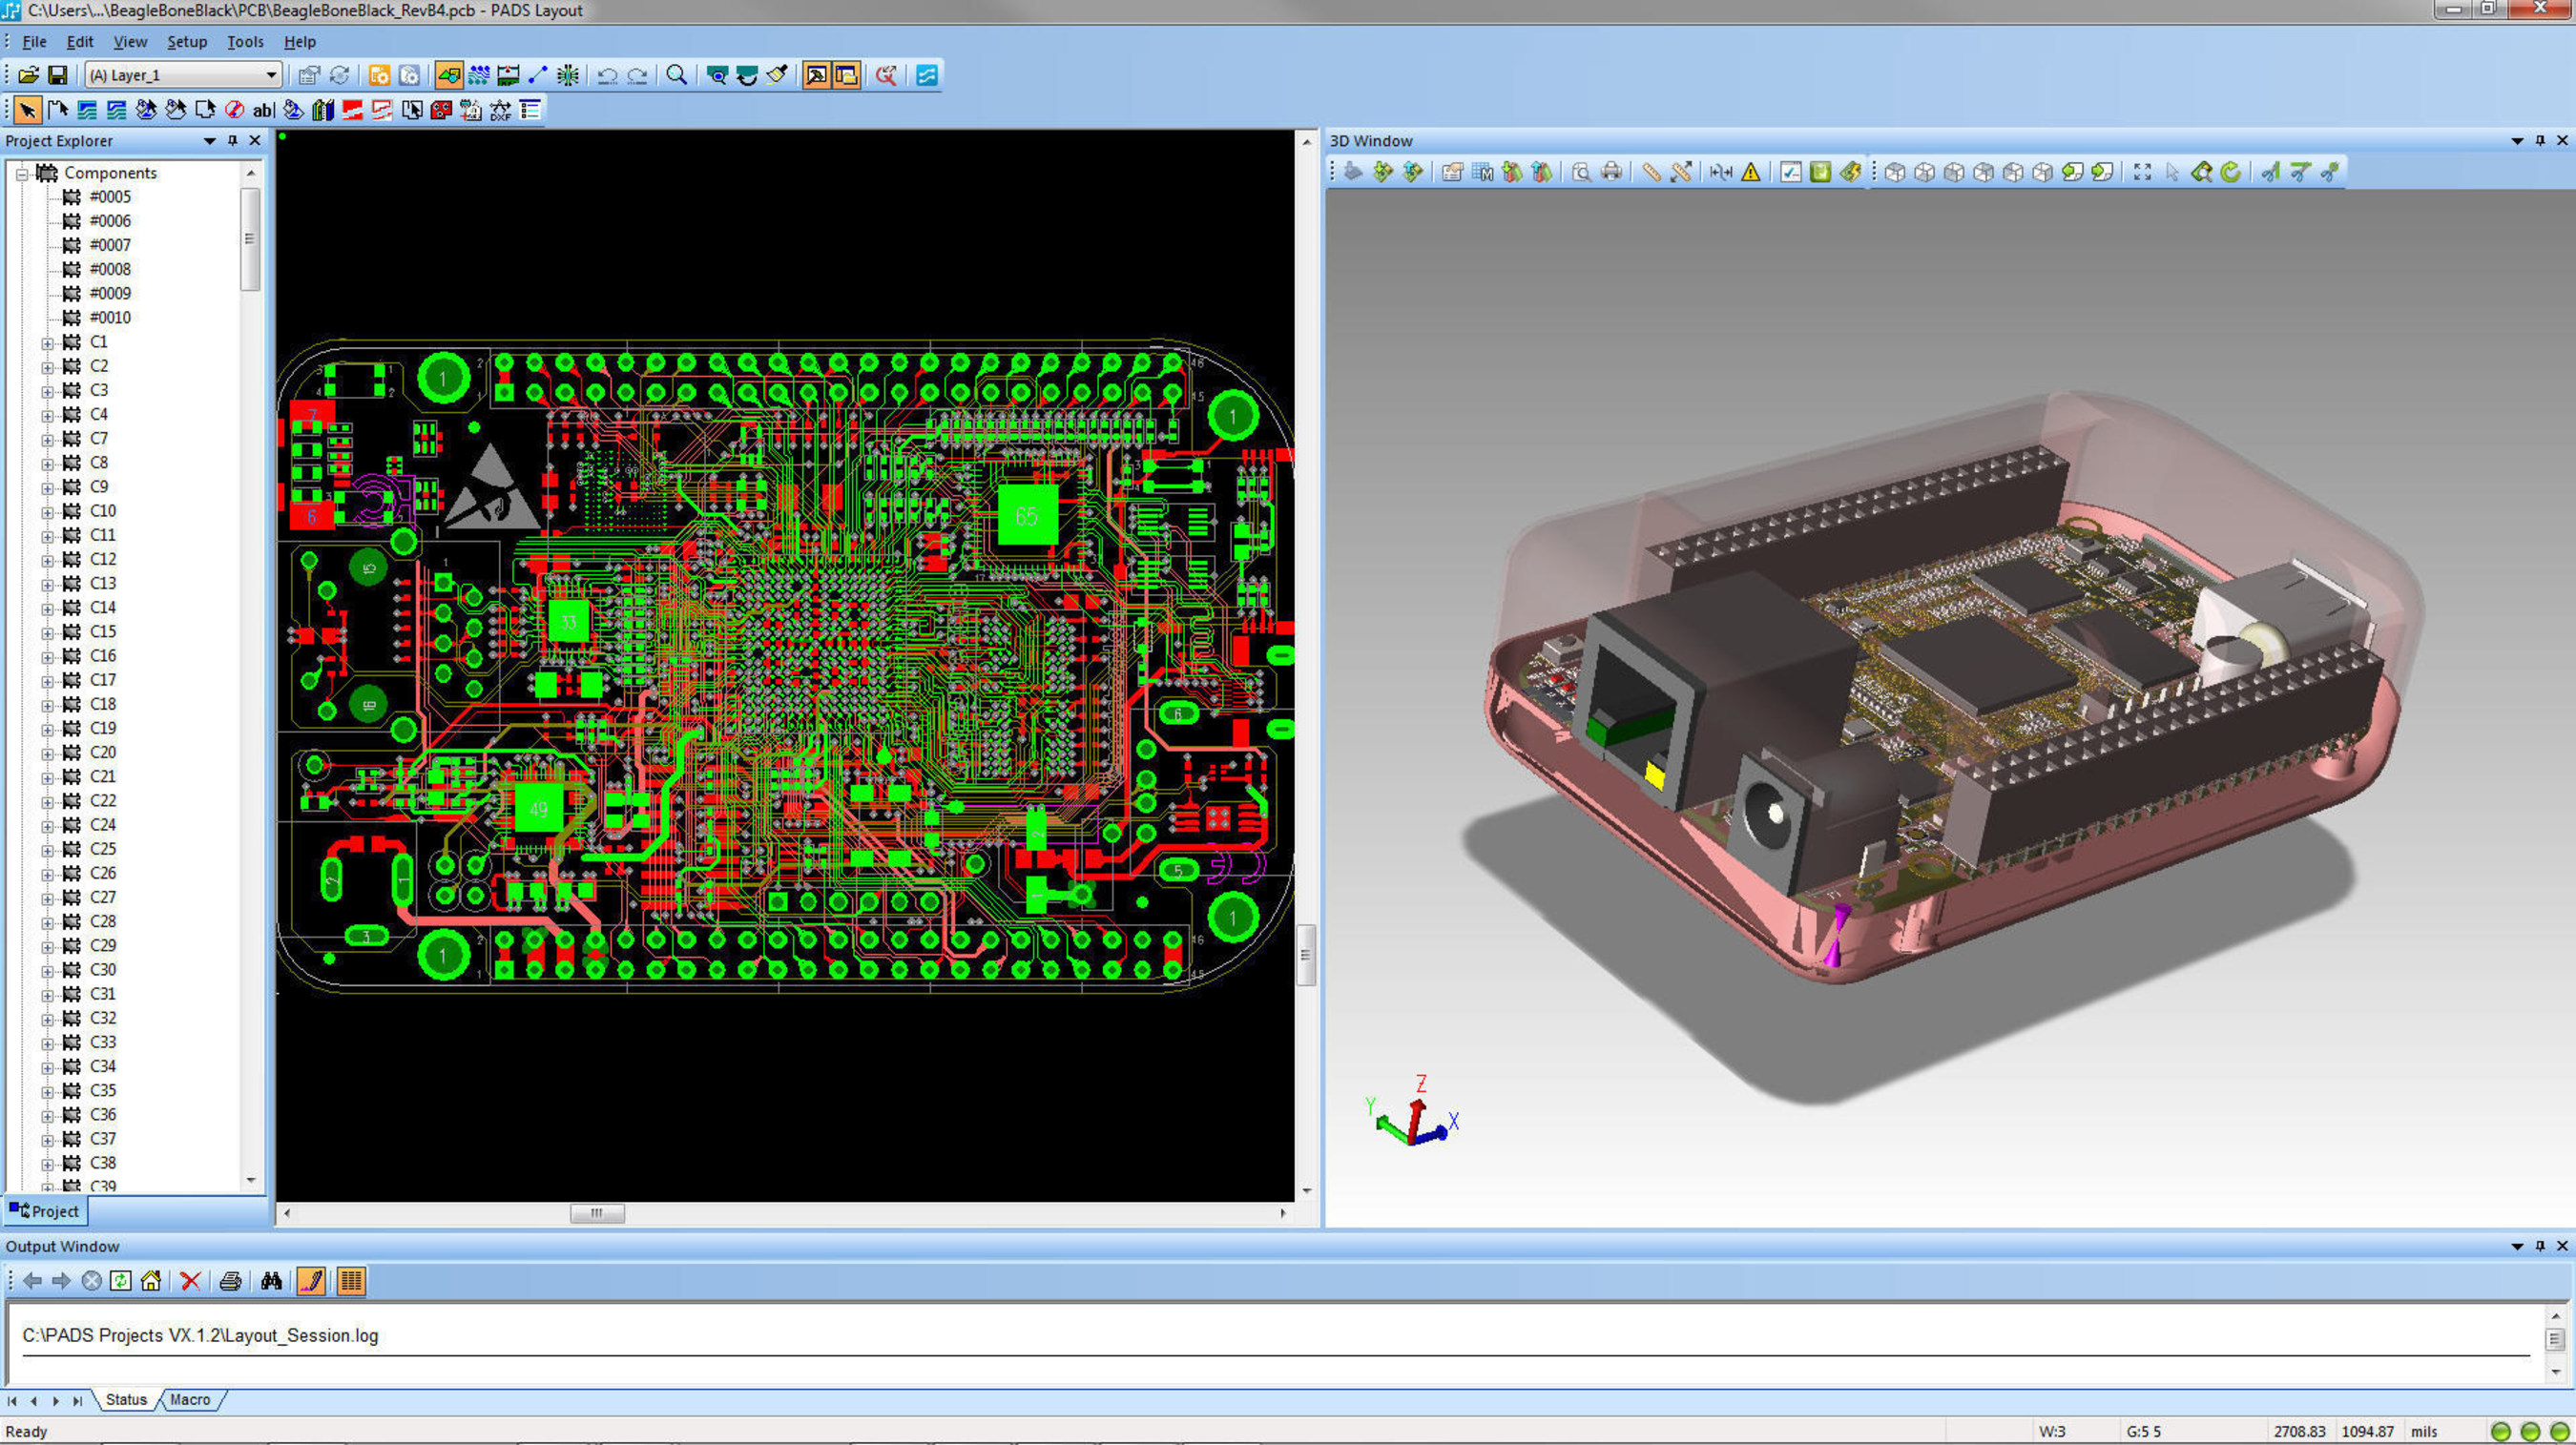 Mentor Graphics Announces New 3d Solution And Major Productivity Aquisition Of Electronic Circuit Boards Pcbs Prototype Padsr Empowers Pcb Designers Engineers To See Every Component Mechanical